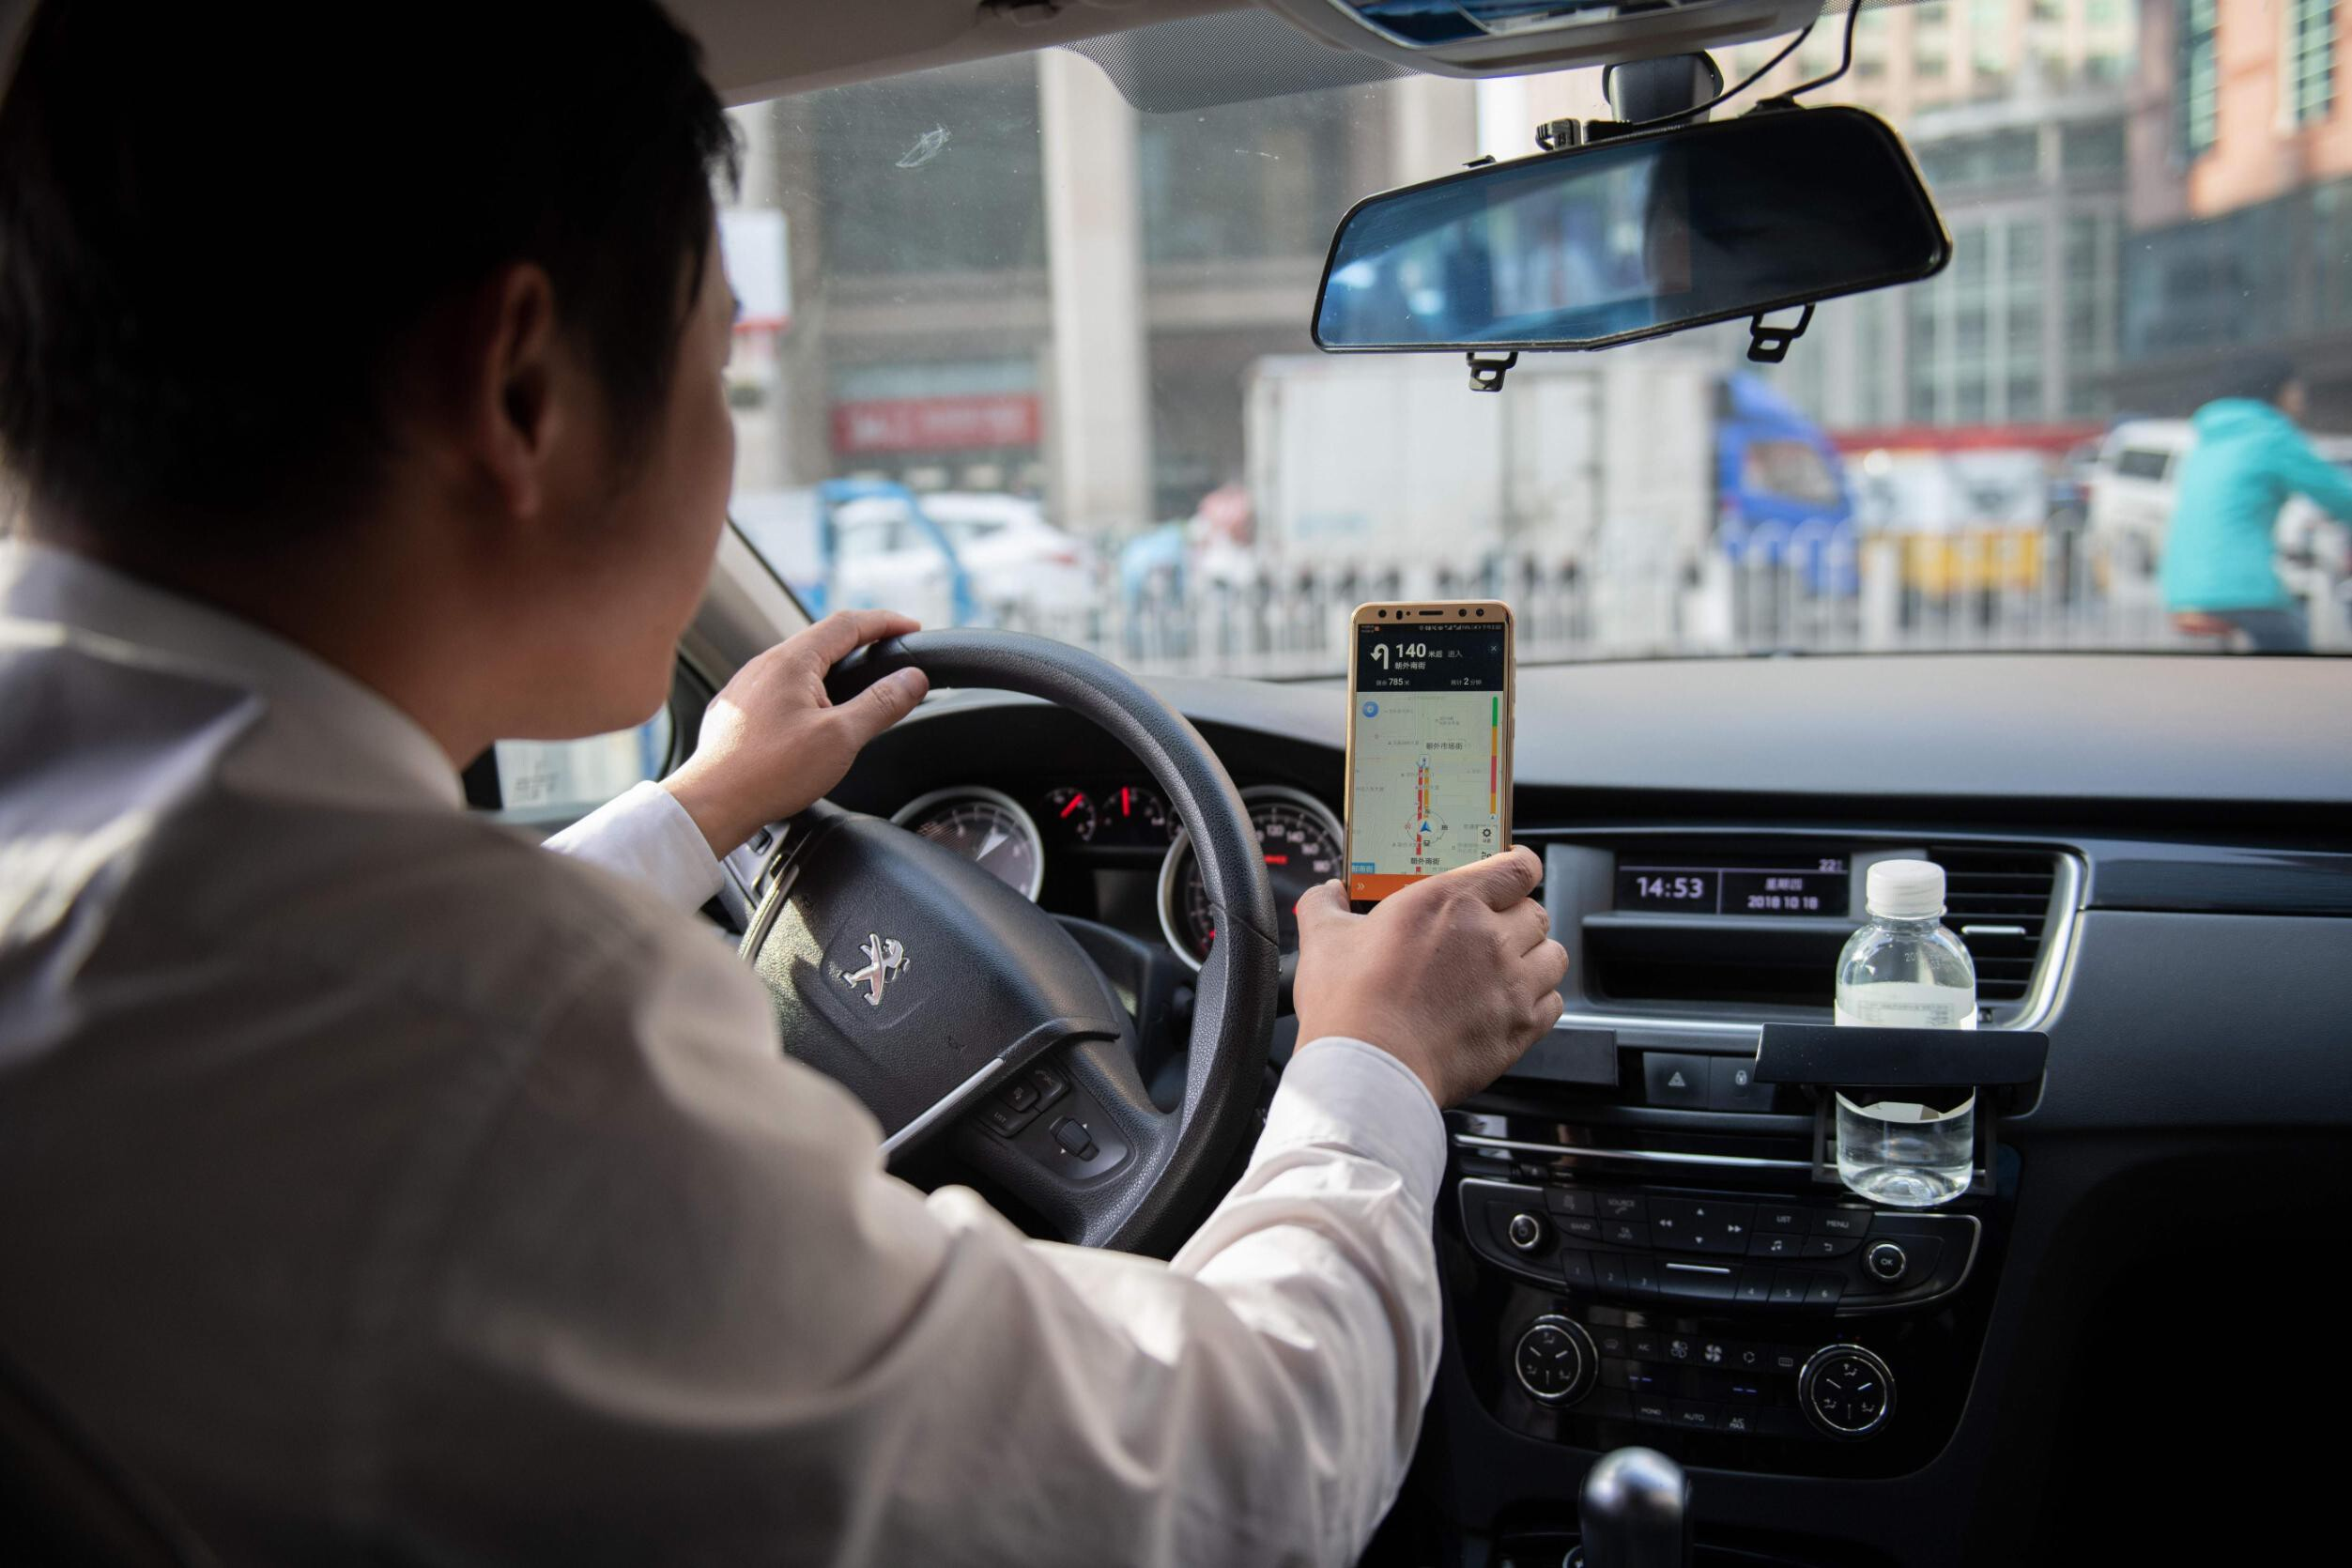 SEC temporarily halts approvals of new Chinese IPOs after Didi debacle